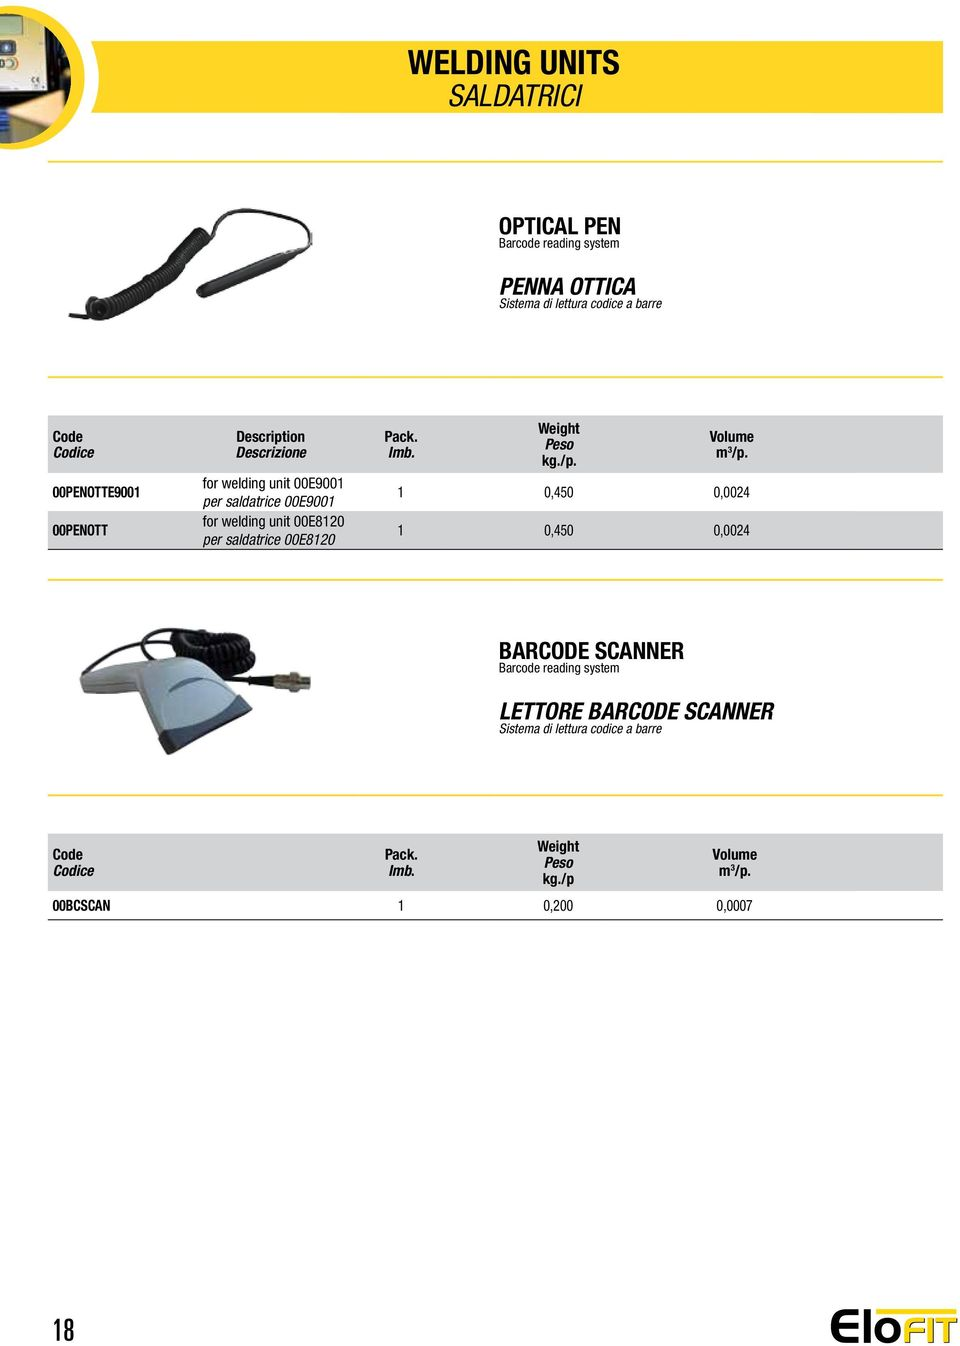 for welding unit 00E8120 per saldatrice 00E8120 1 0,450 0,0024 1 0,450 0,0024 BARCODE SCANNER Barcode